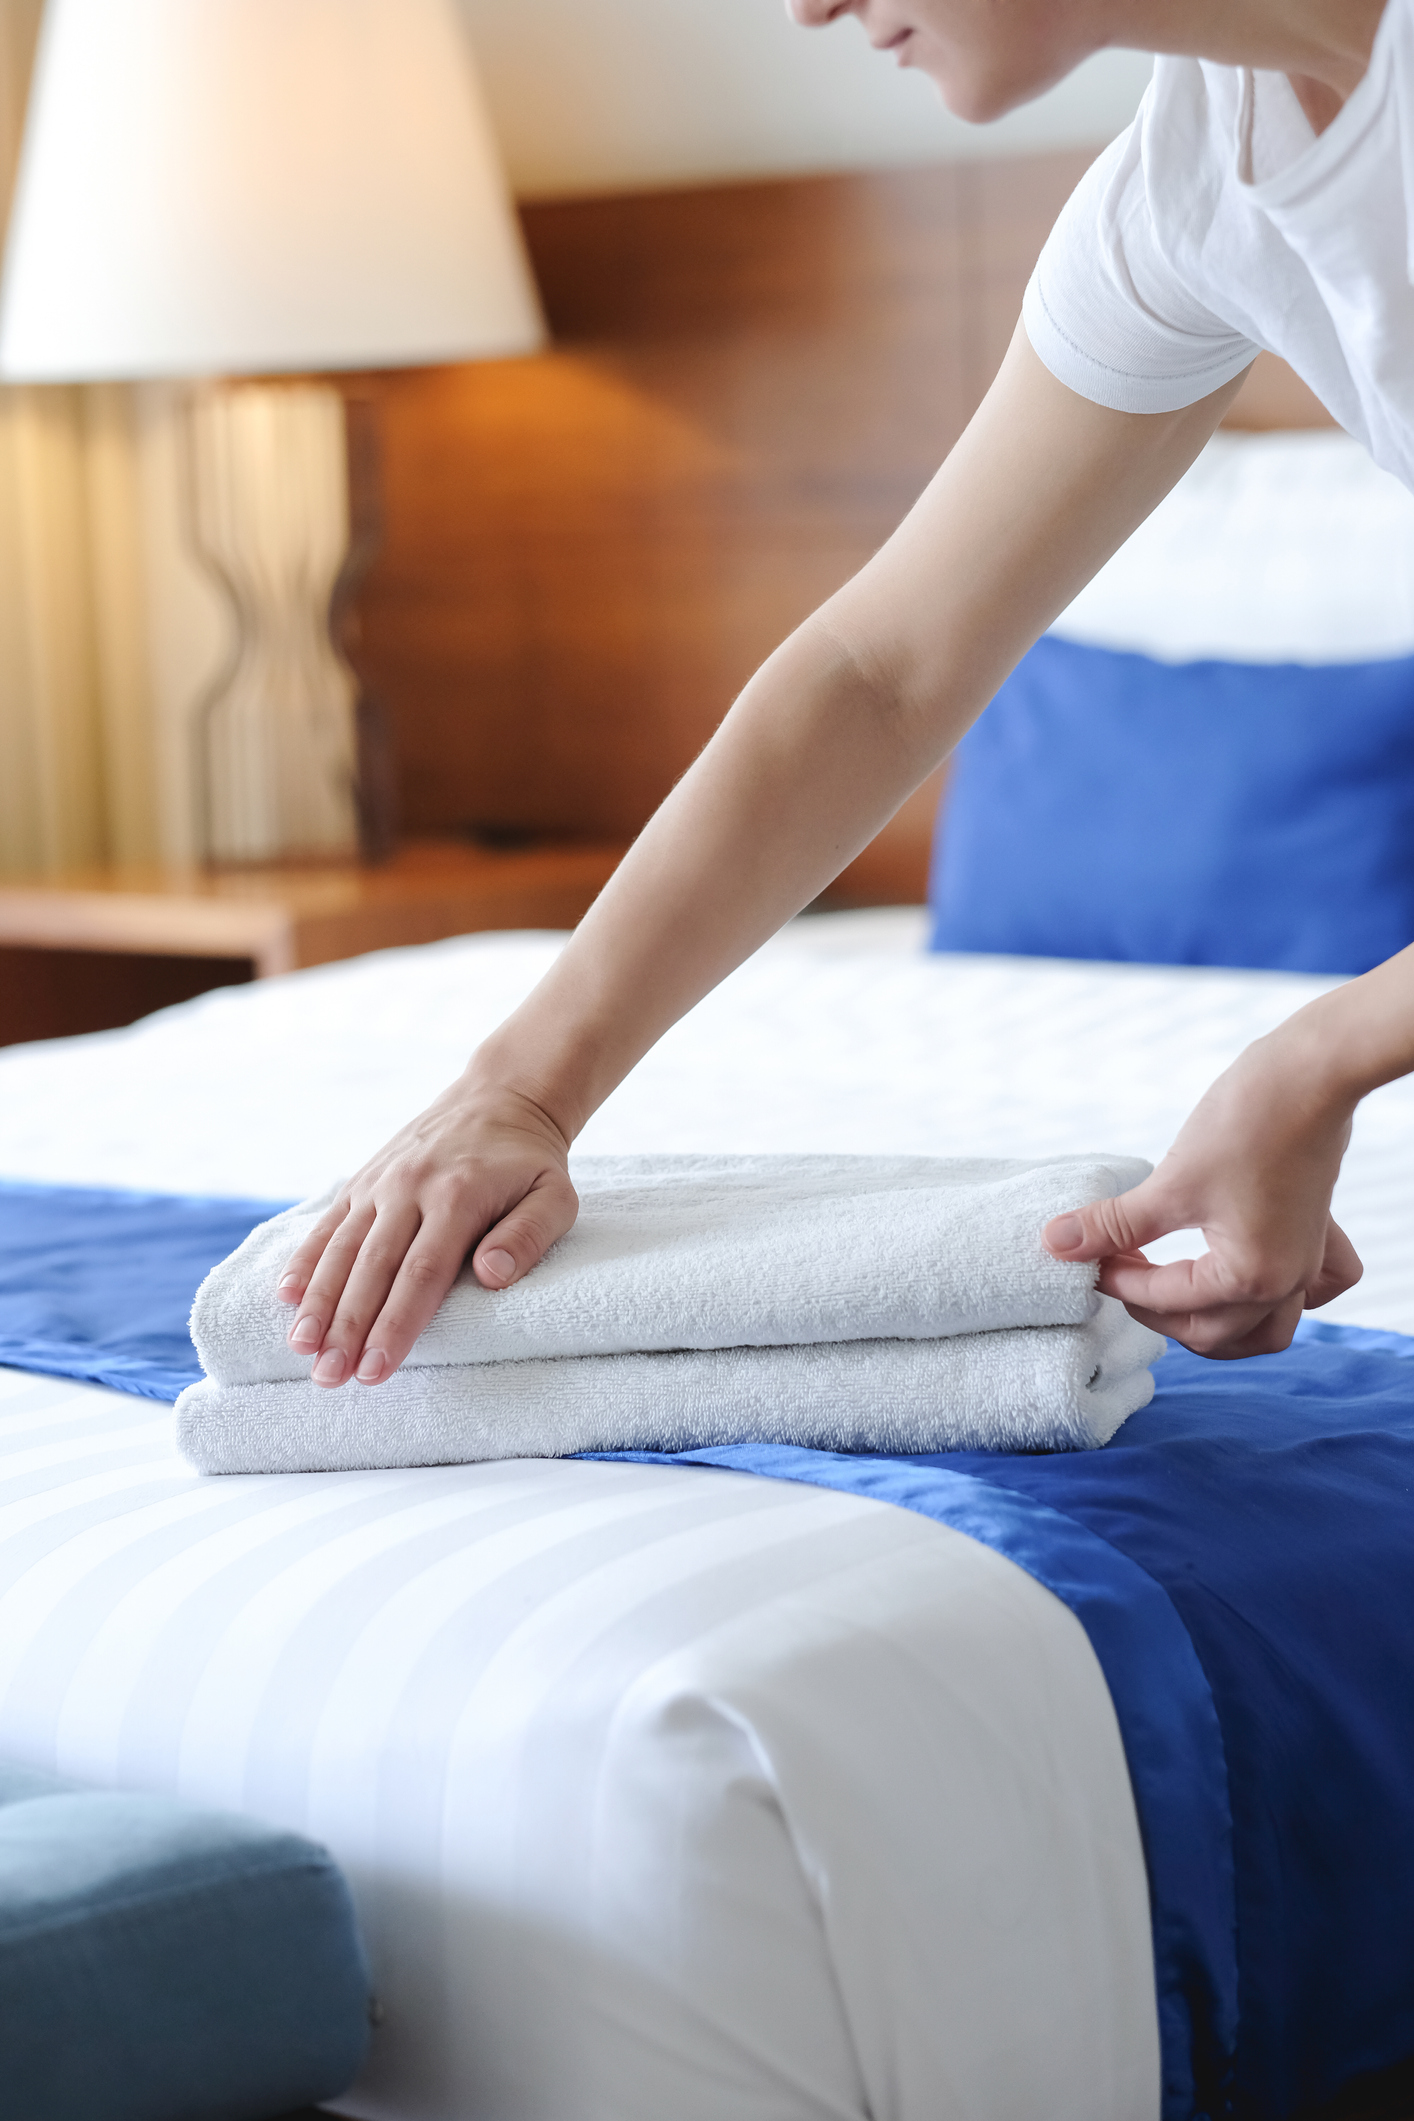 Hands of hotel maid bringing fresh towels to the hotel room